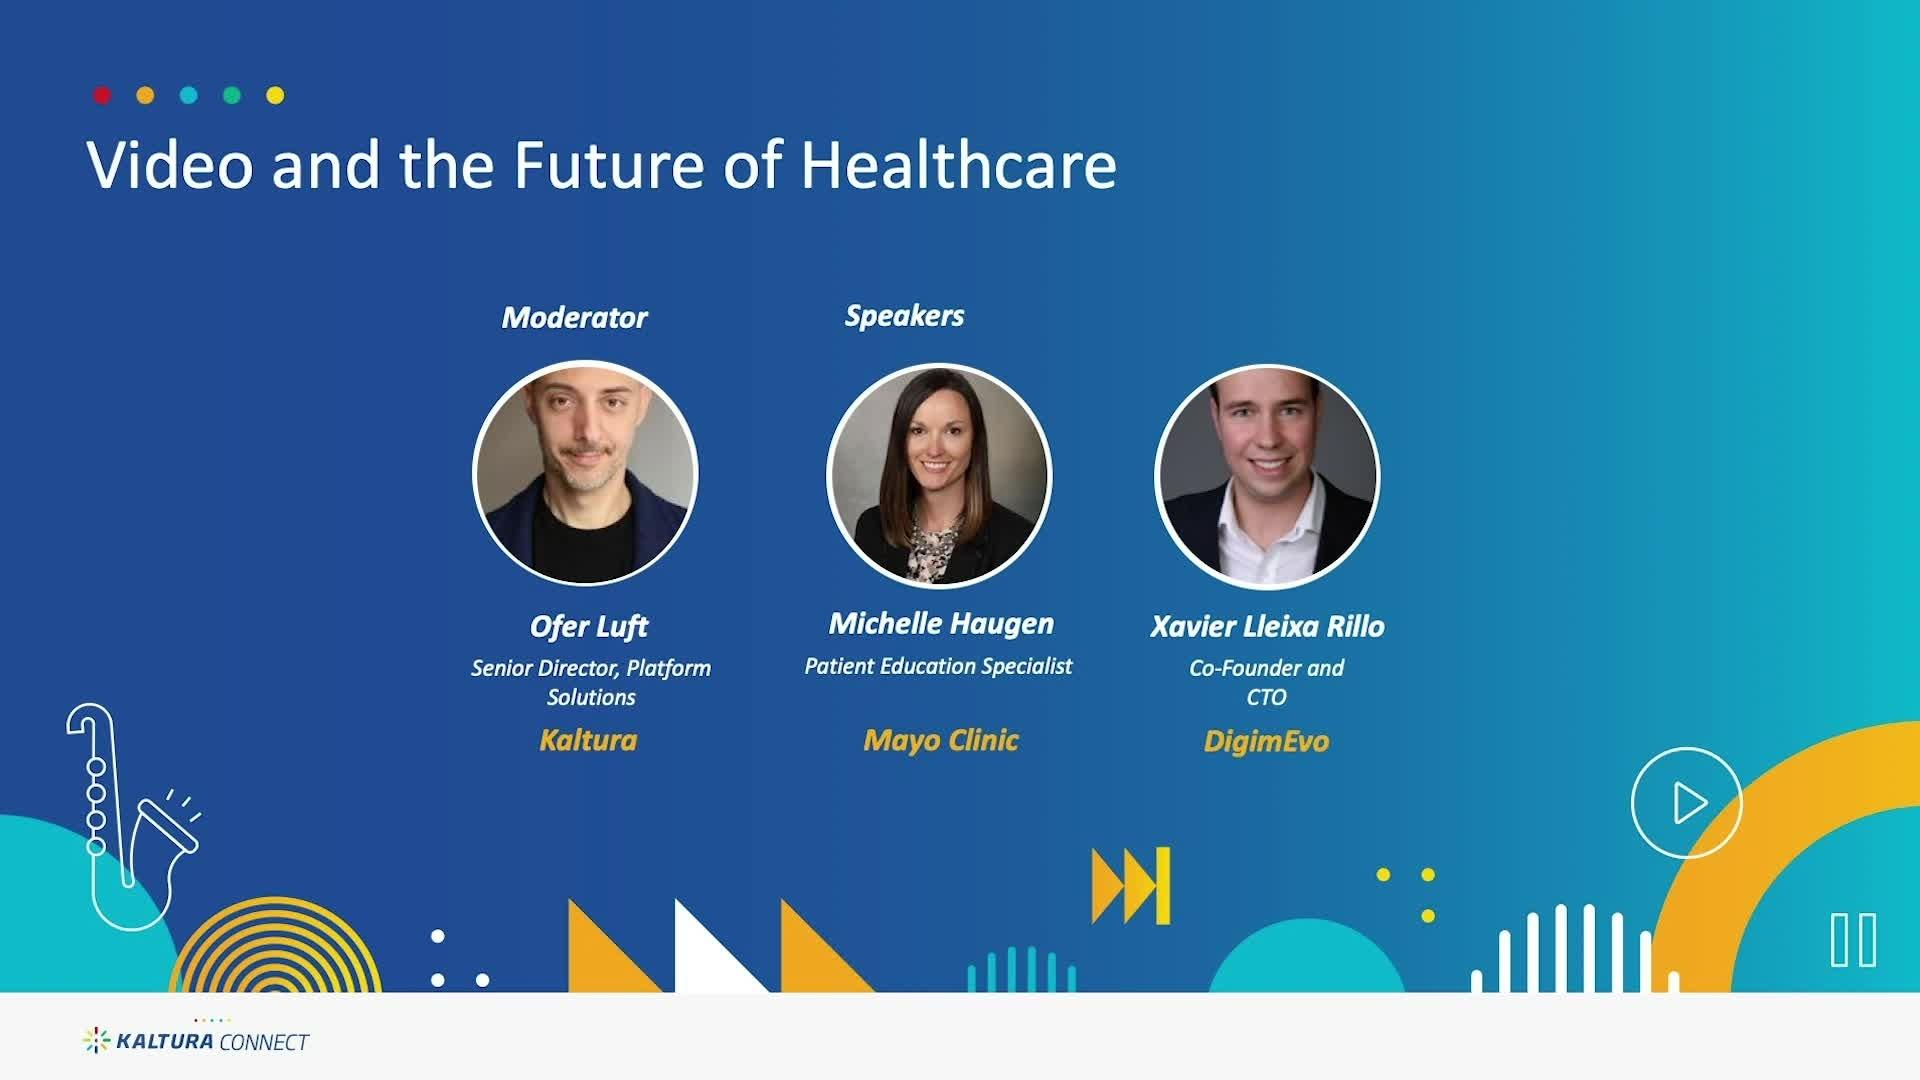 Video and the Future of Healthcare